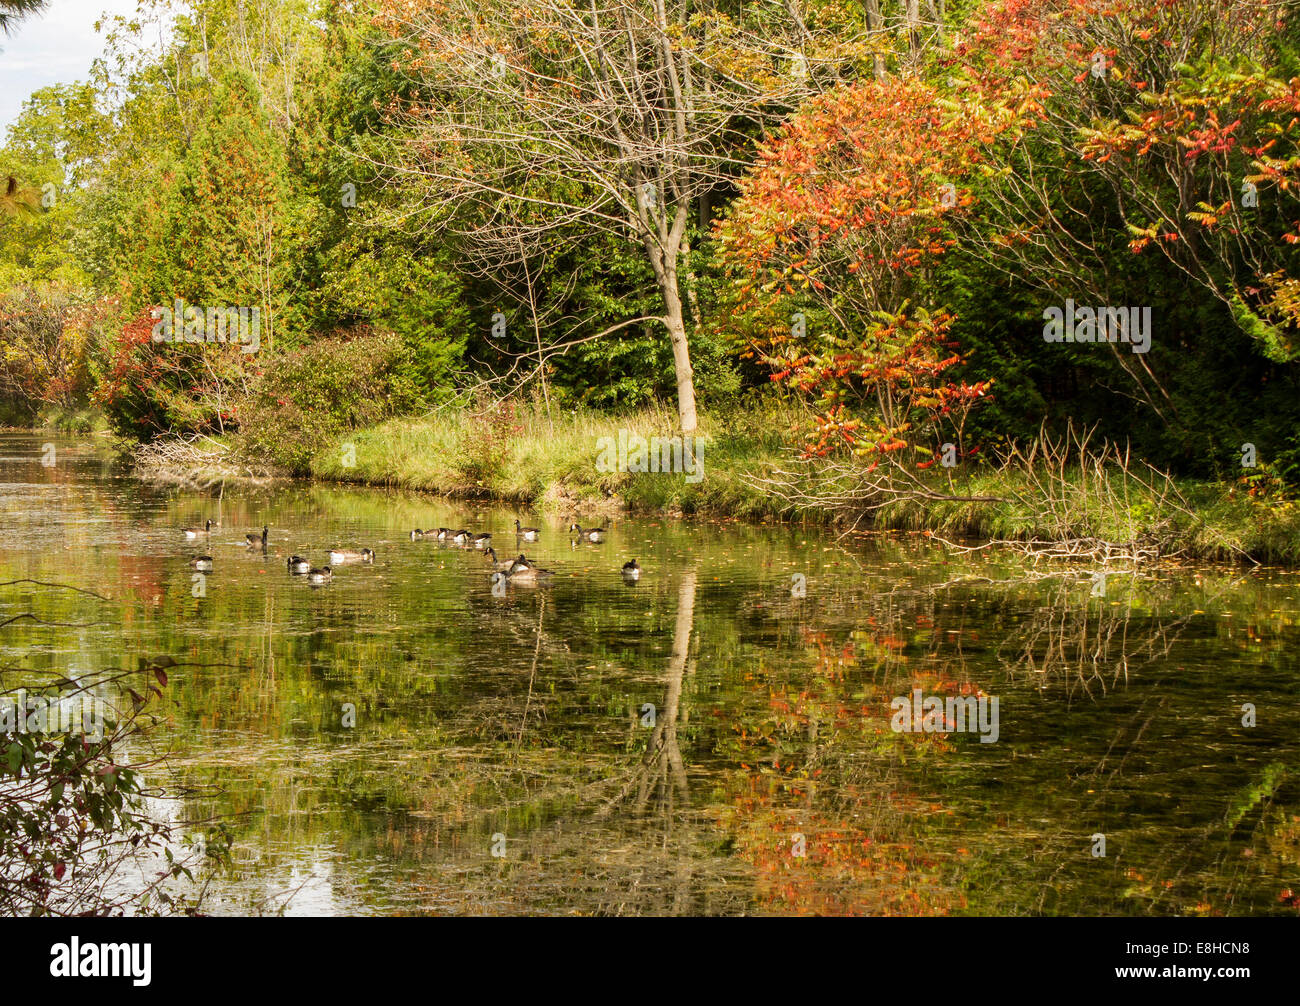 flock-of-canada-geese-resting-on-the-aus